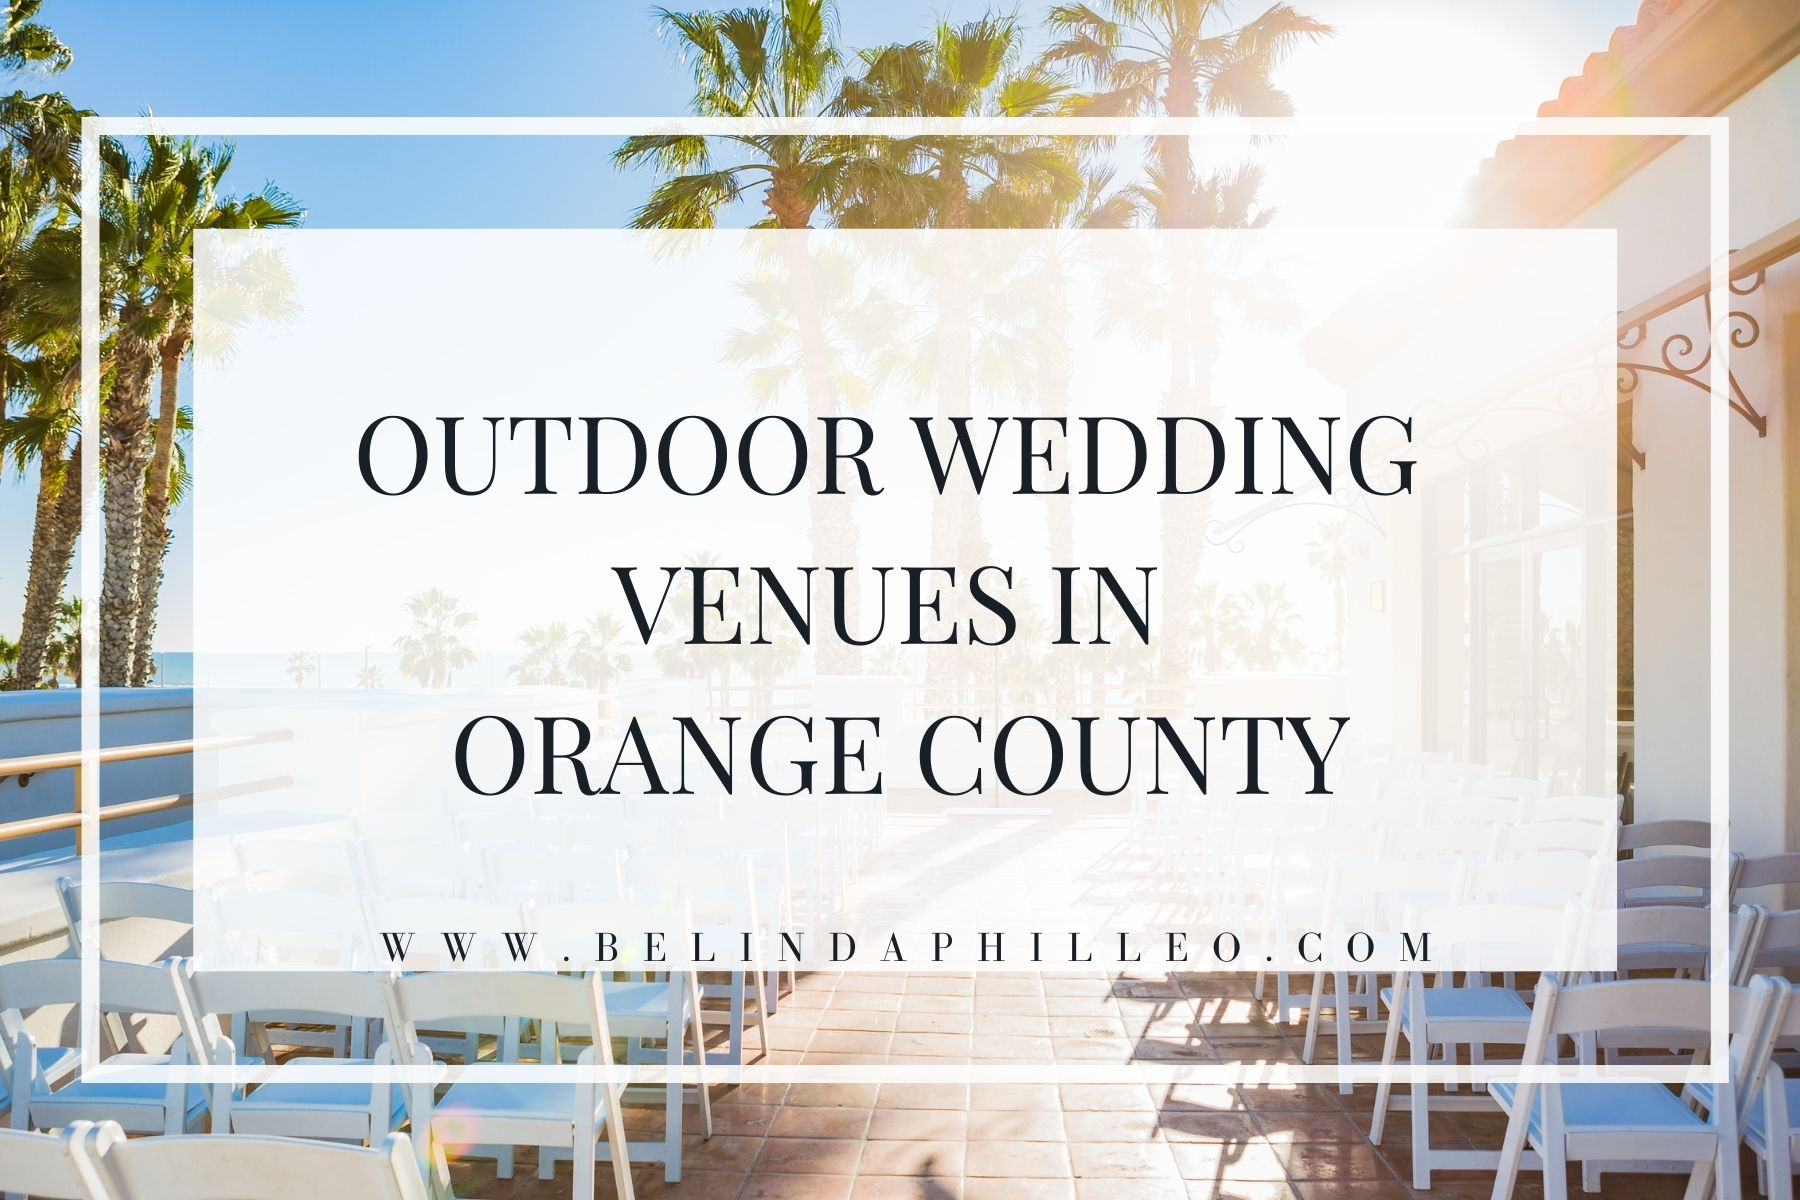 Guide to outdoor wedding venues in Orange County, CA by Belinda Philleo